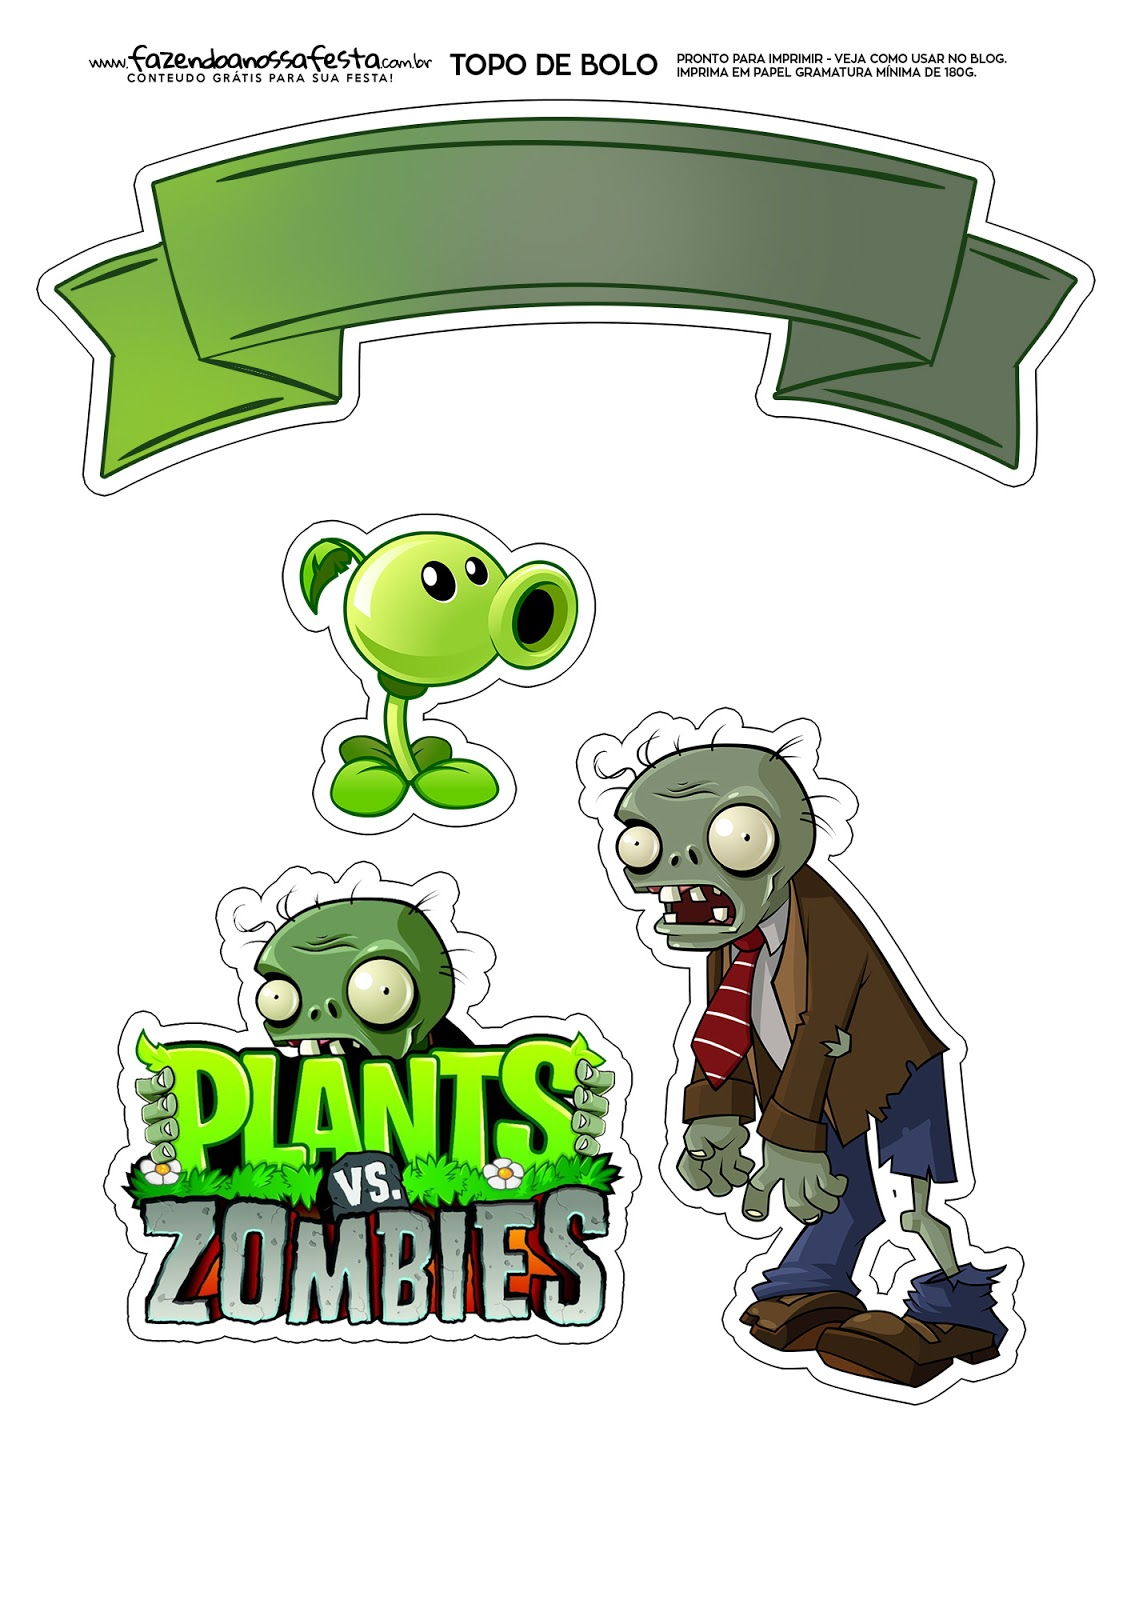 Plants Vs Zombies Free Printable Cake Toppers Oh My Fiesta For Geeks